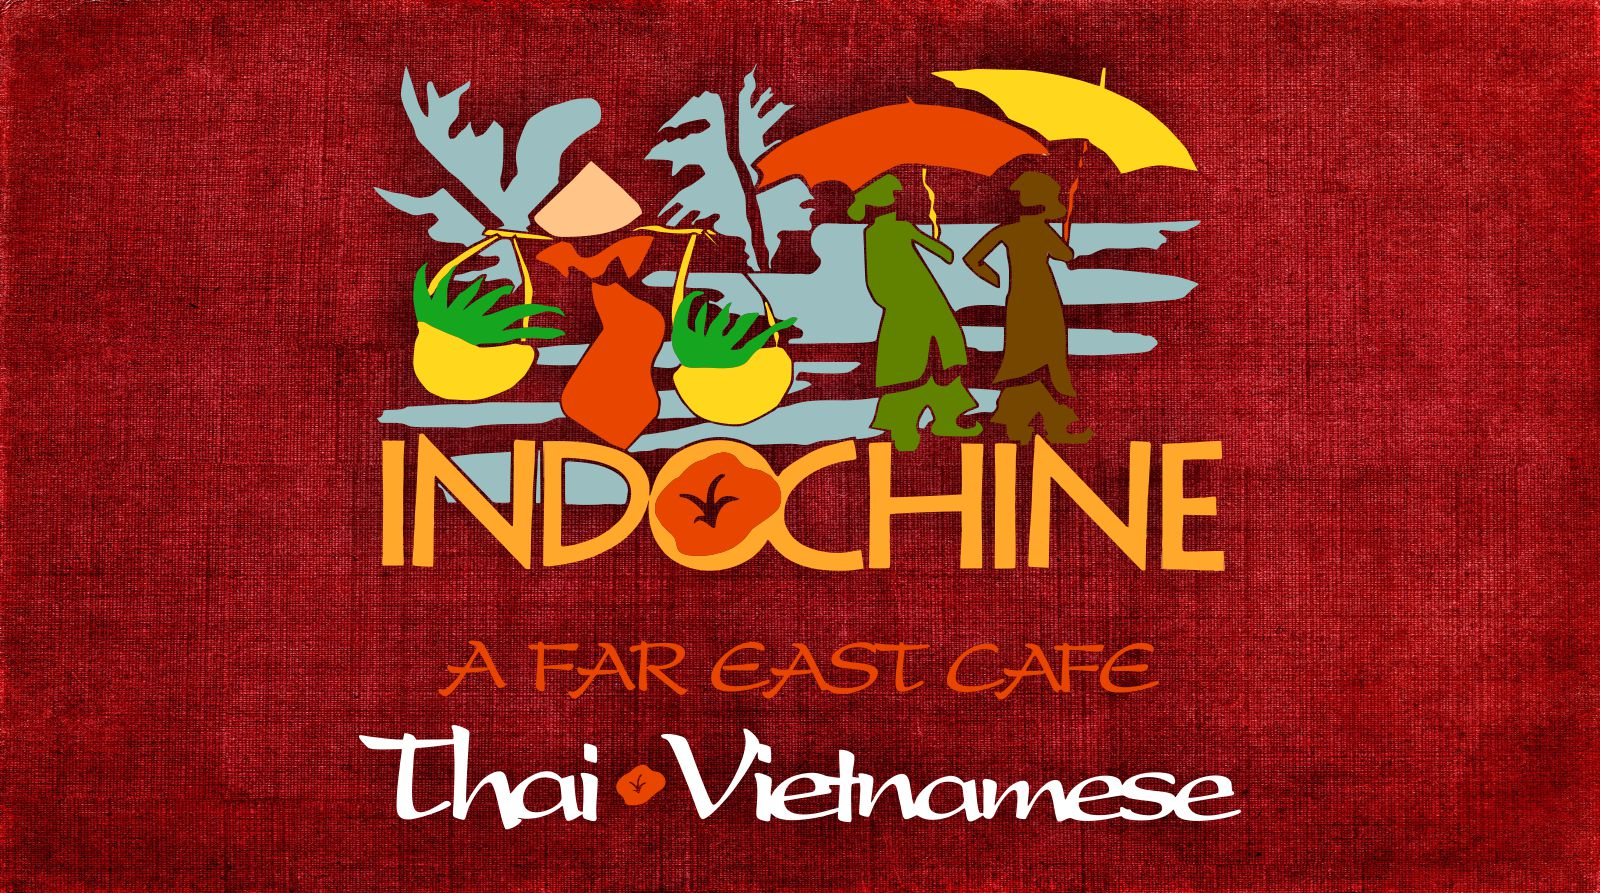 Indochine Restaurant | A Far East Cafe | Thai-Vietnamese Cuisine